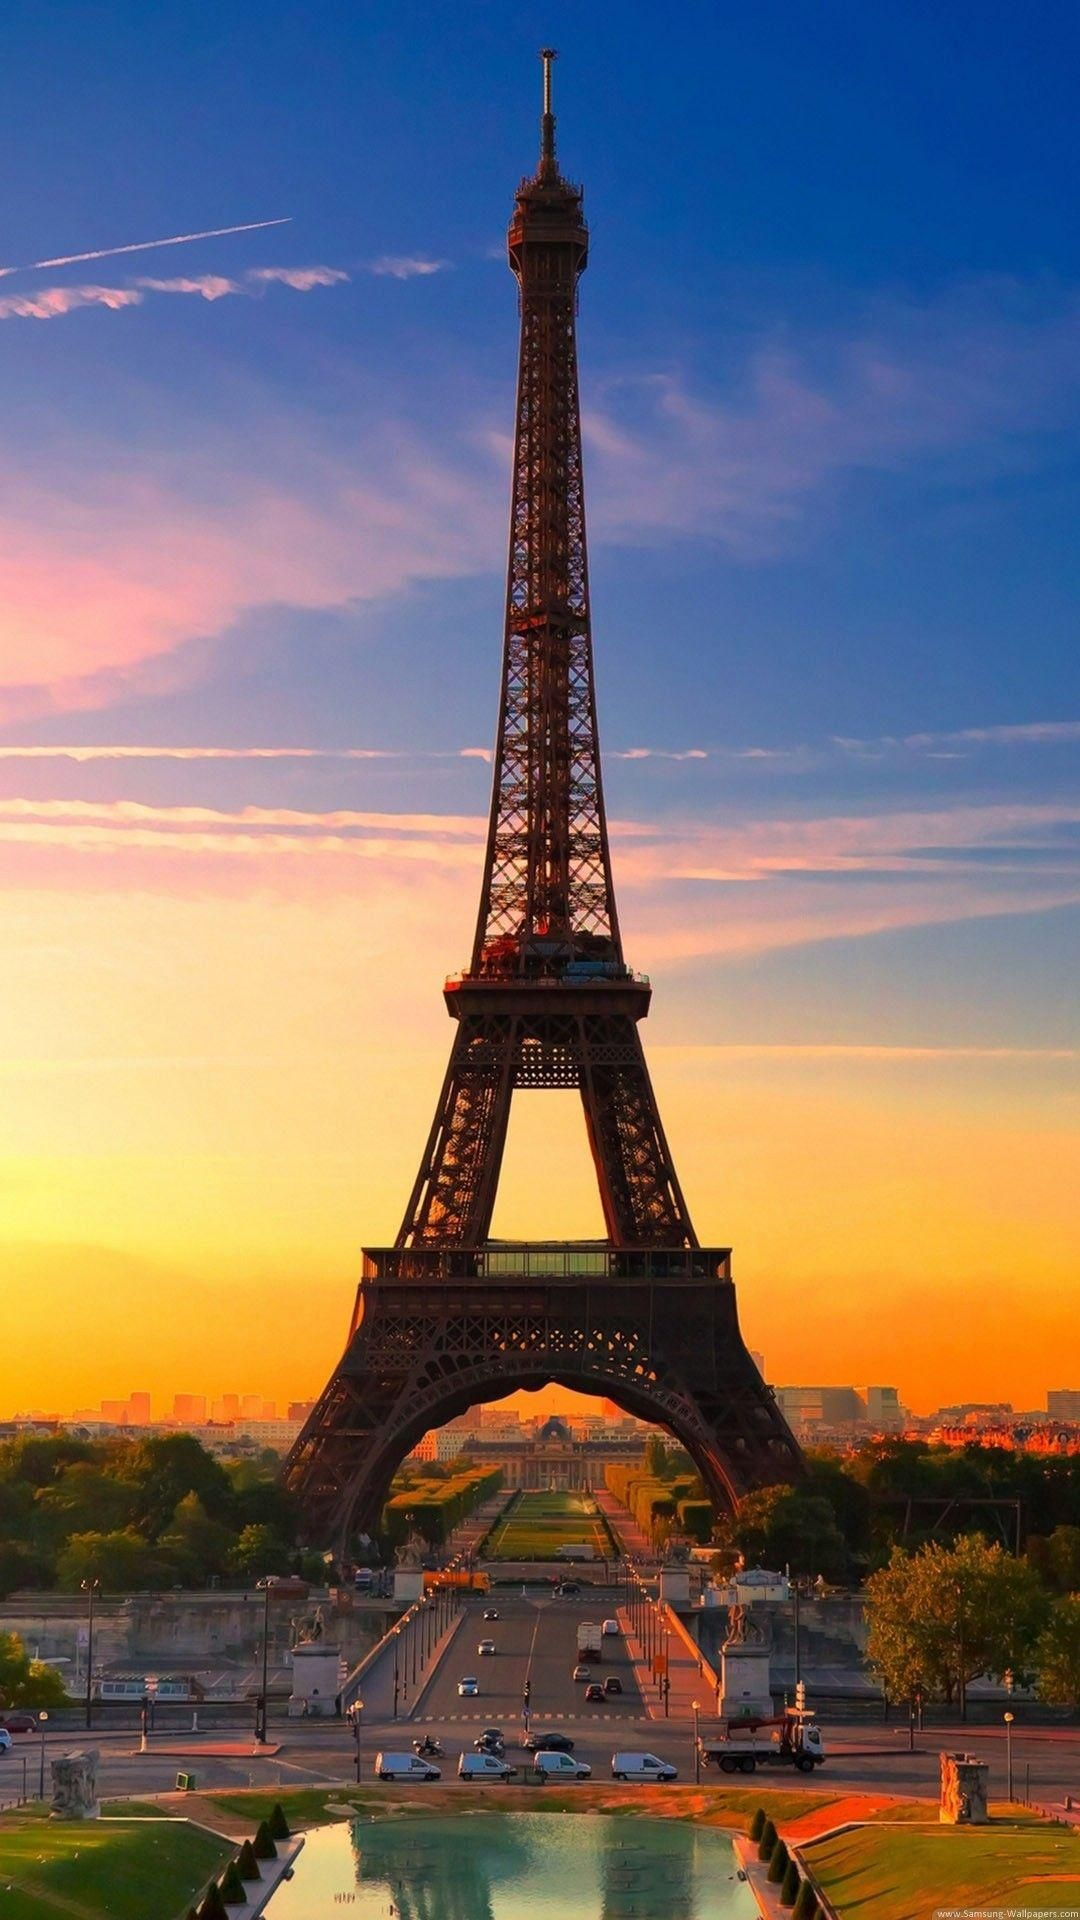 Best 1080p Wallpapers For Mobile All In Wallpaper In 2020 Hd Nature Wallpapers City Wallpaper Eiffel Tower